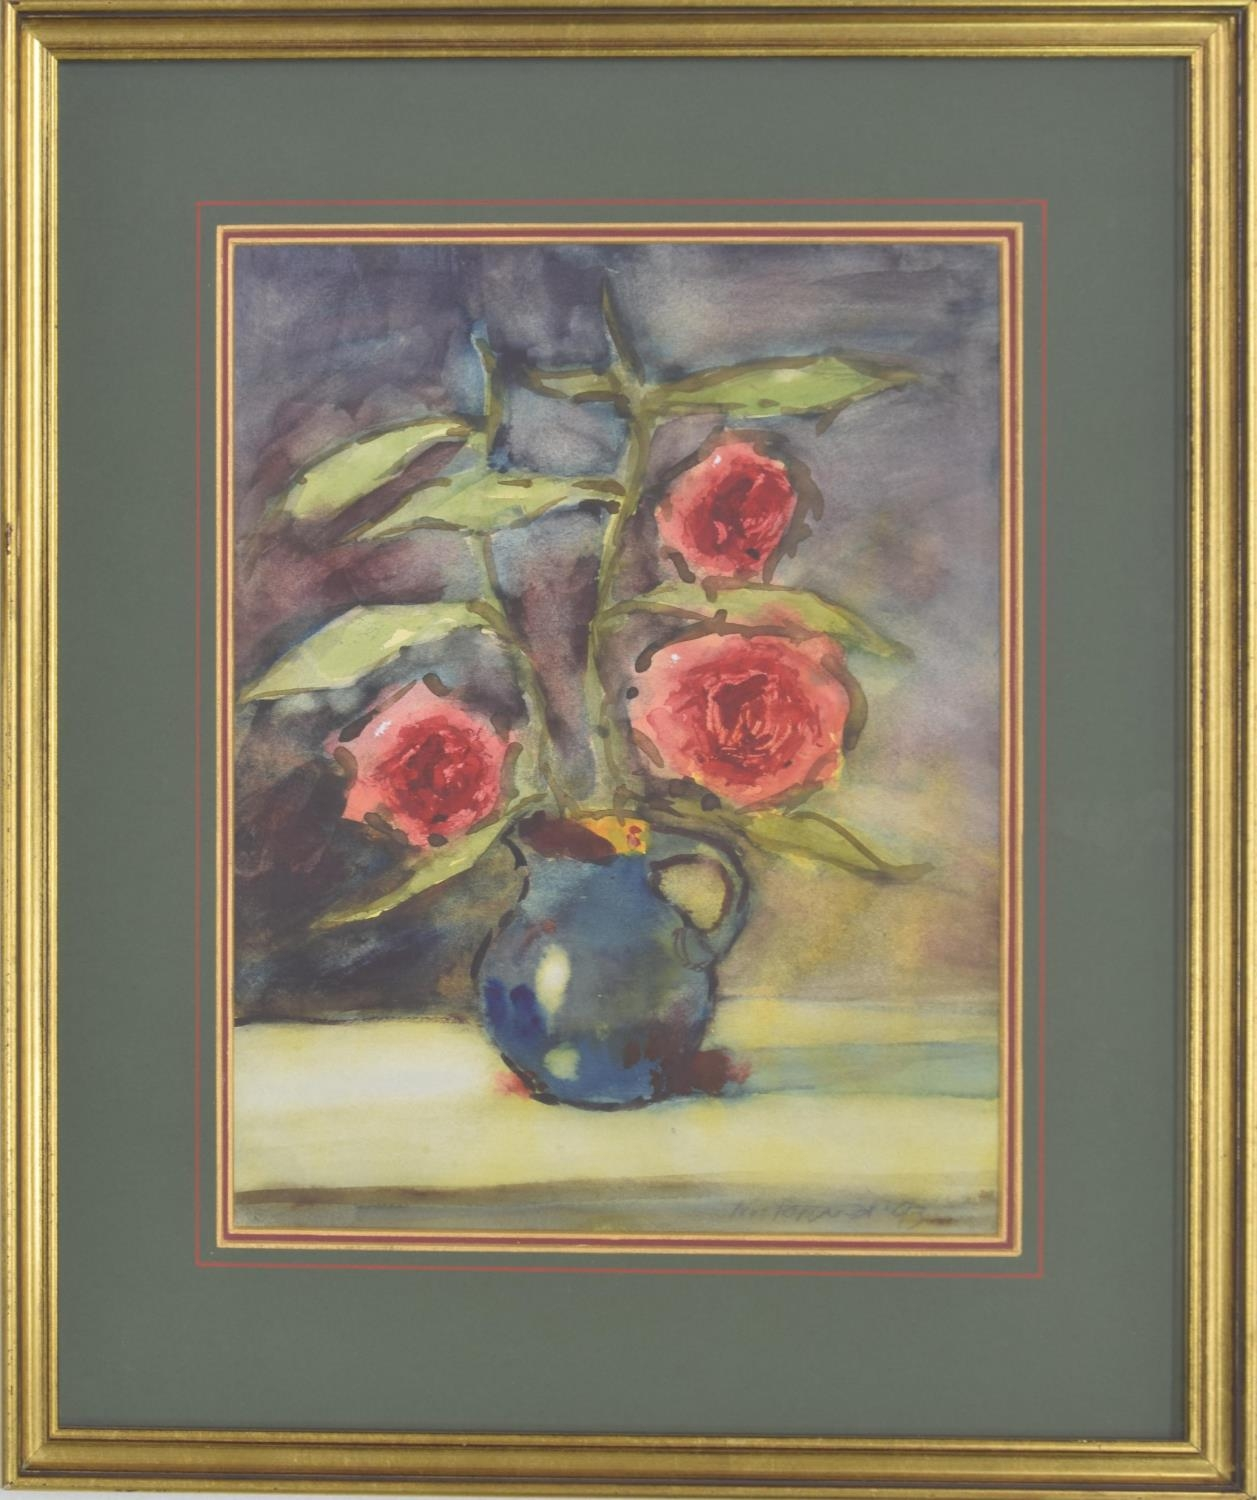 Continental School (20th century) - still life of roses in a blue jug, indistinctly signed and dated